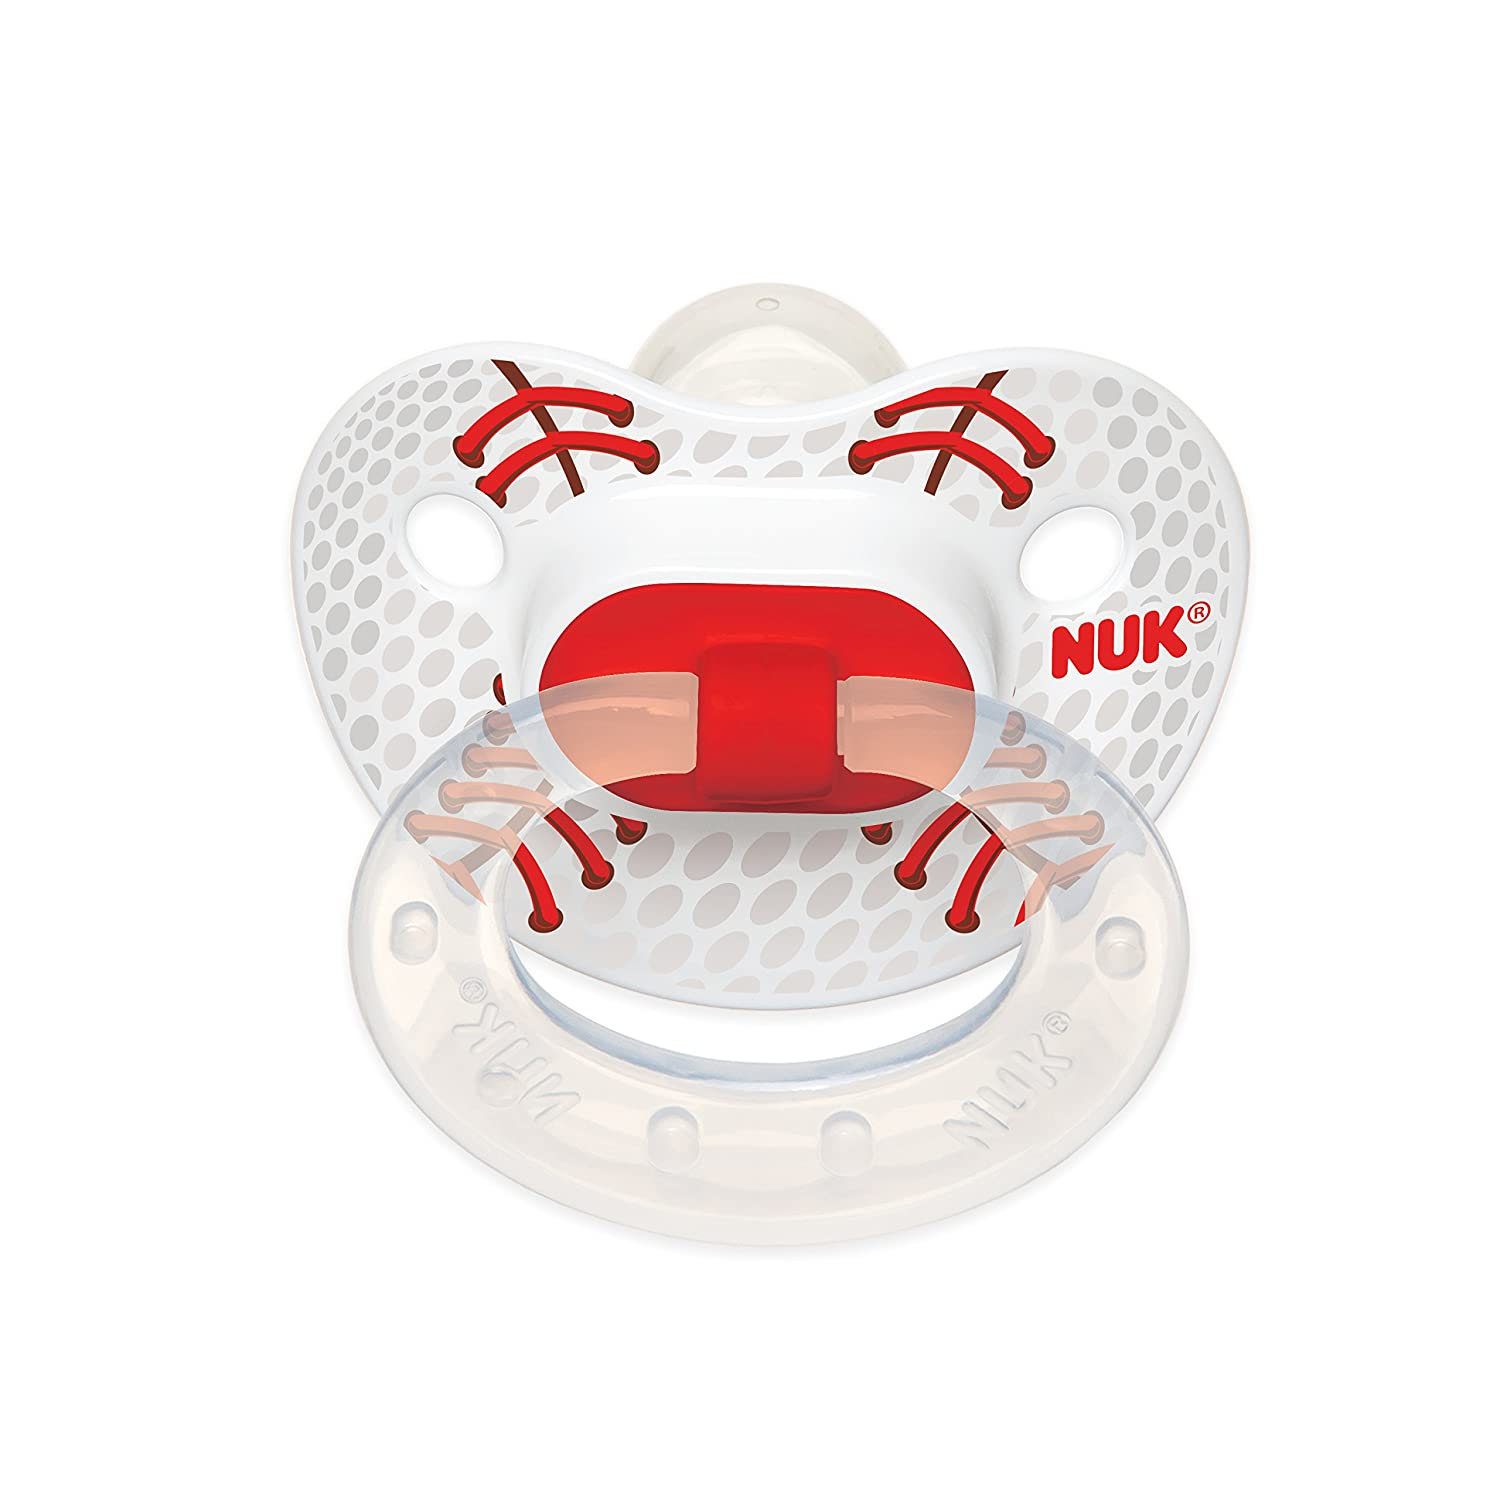 NUK Sports Puller Pacifier in Assorted Colors and Styles, 18-36 Months (Color May Vary)